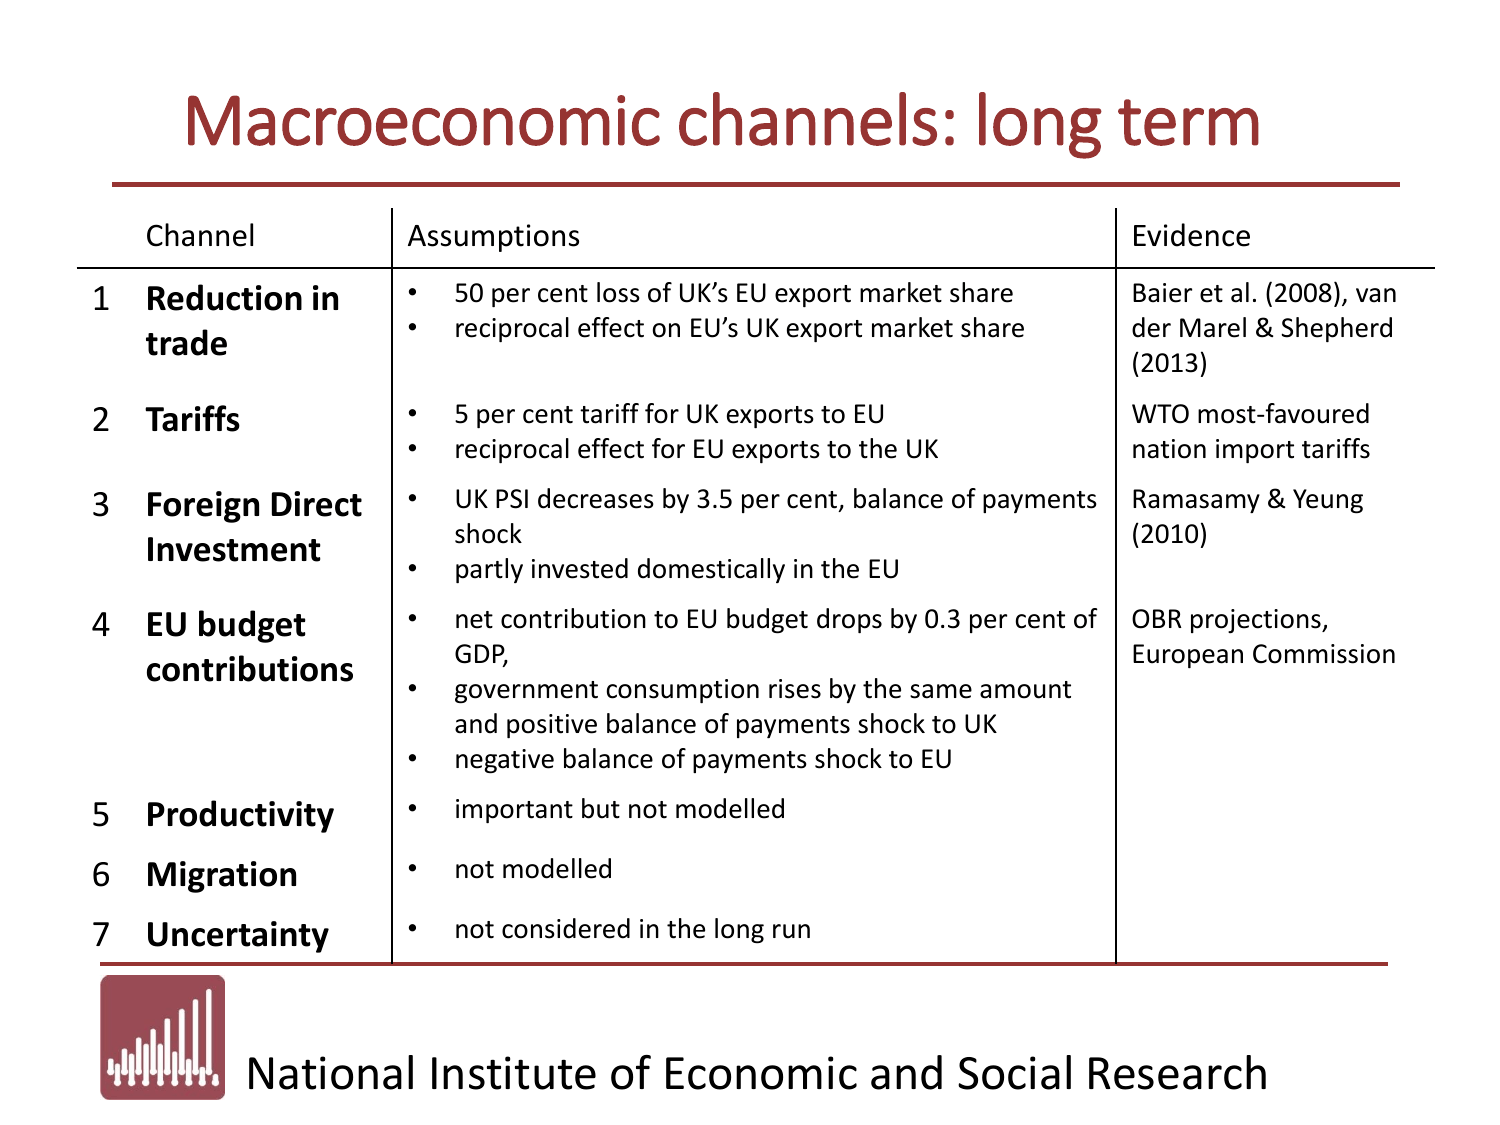 NIESR Brexit Macroeconomic Channels Long Term